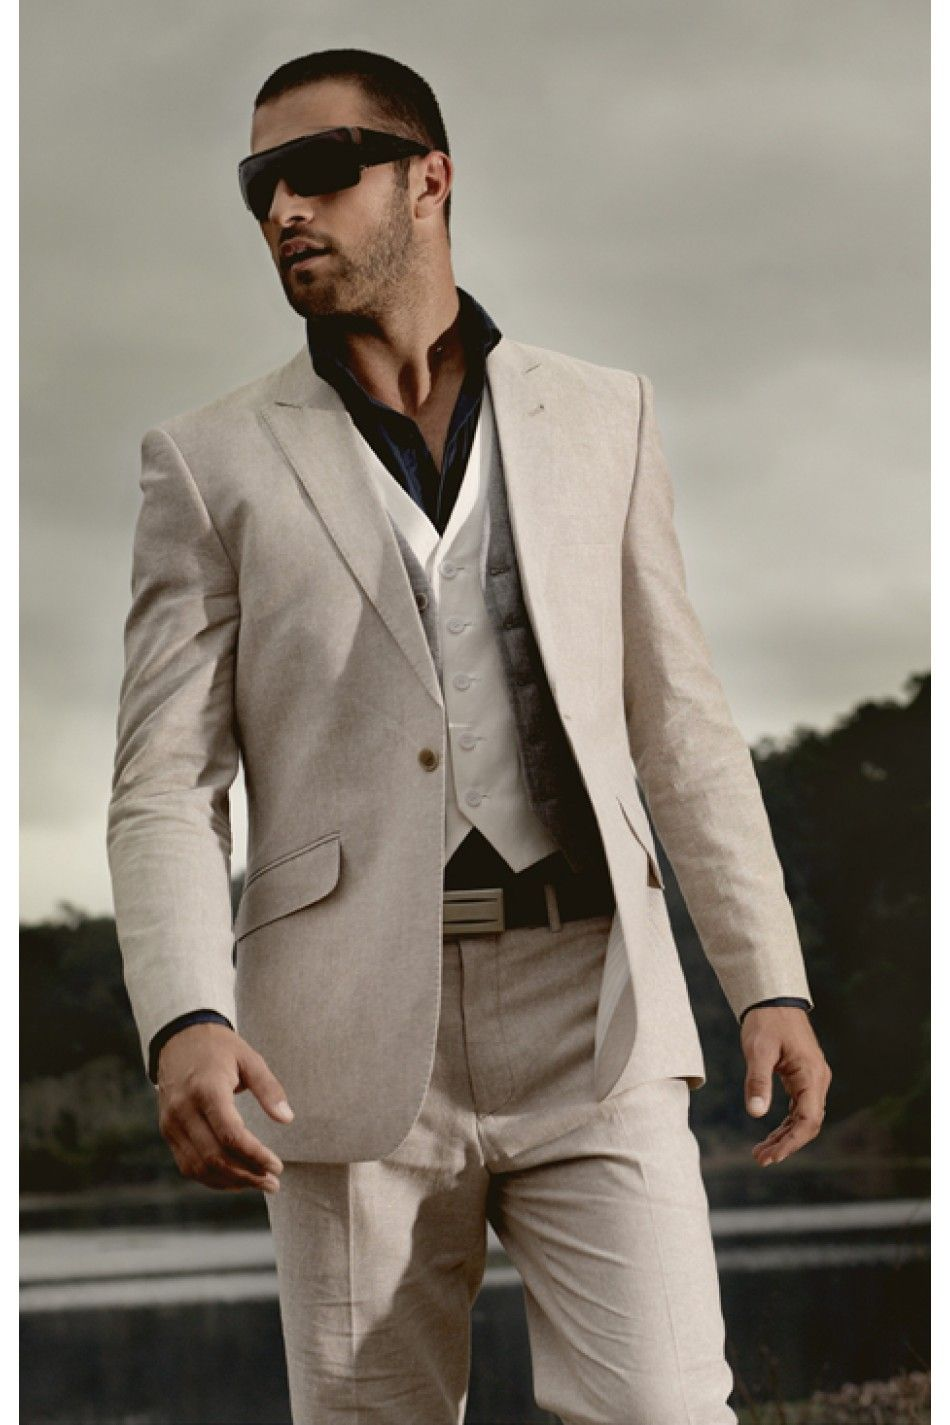 Linen/Cotton Slim Fit Suit | Wedding Suits | Pinterest | Slim fit ...